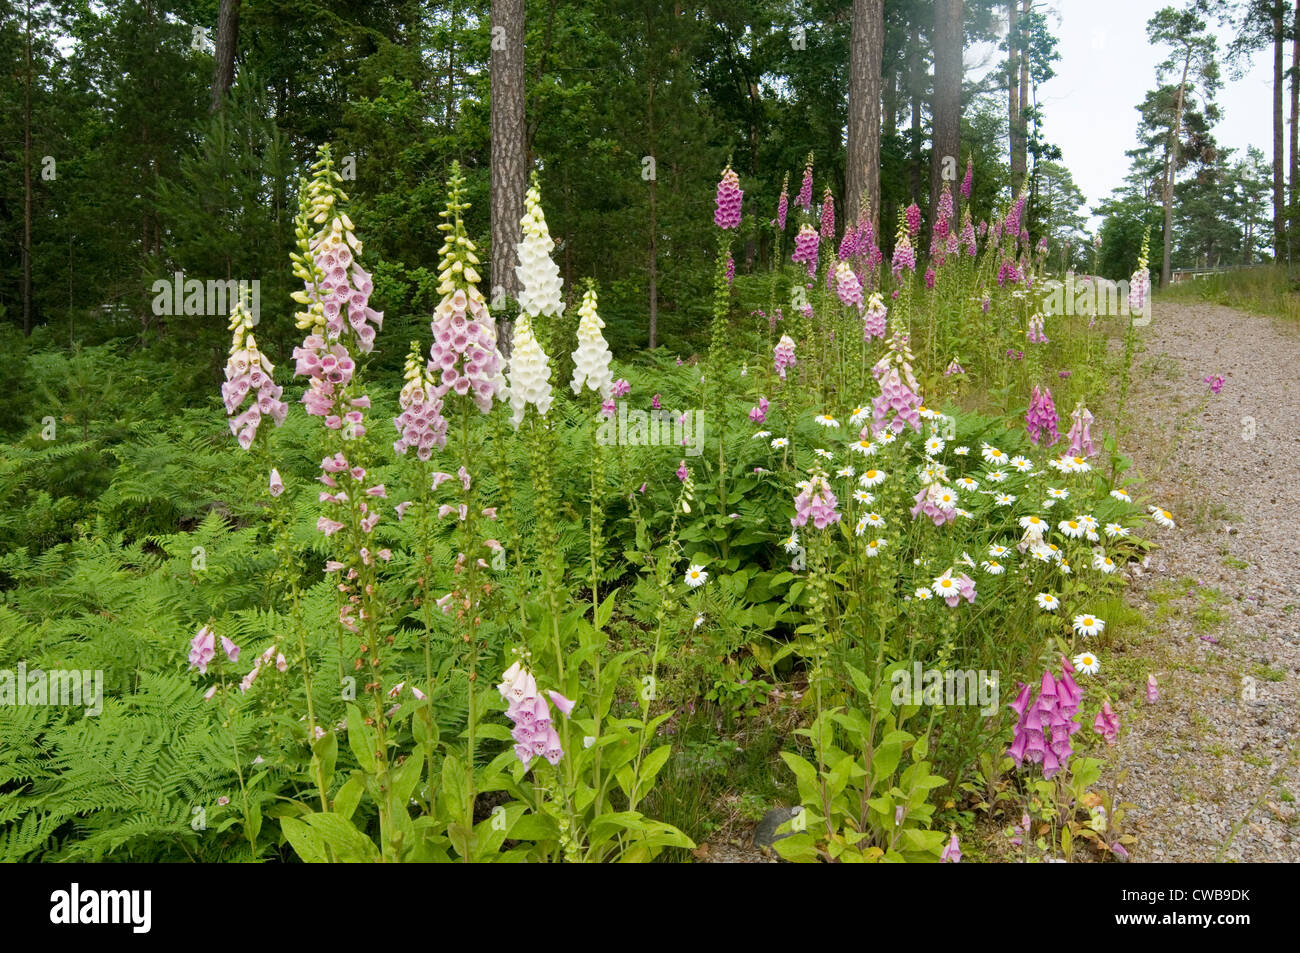 foxglove foxgloves wild flower flowers growing in swedish forest sweden flora and forna growing wild - Stock Image